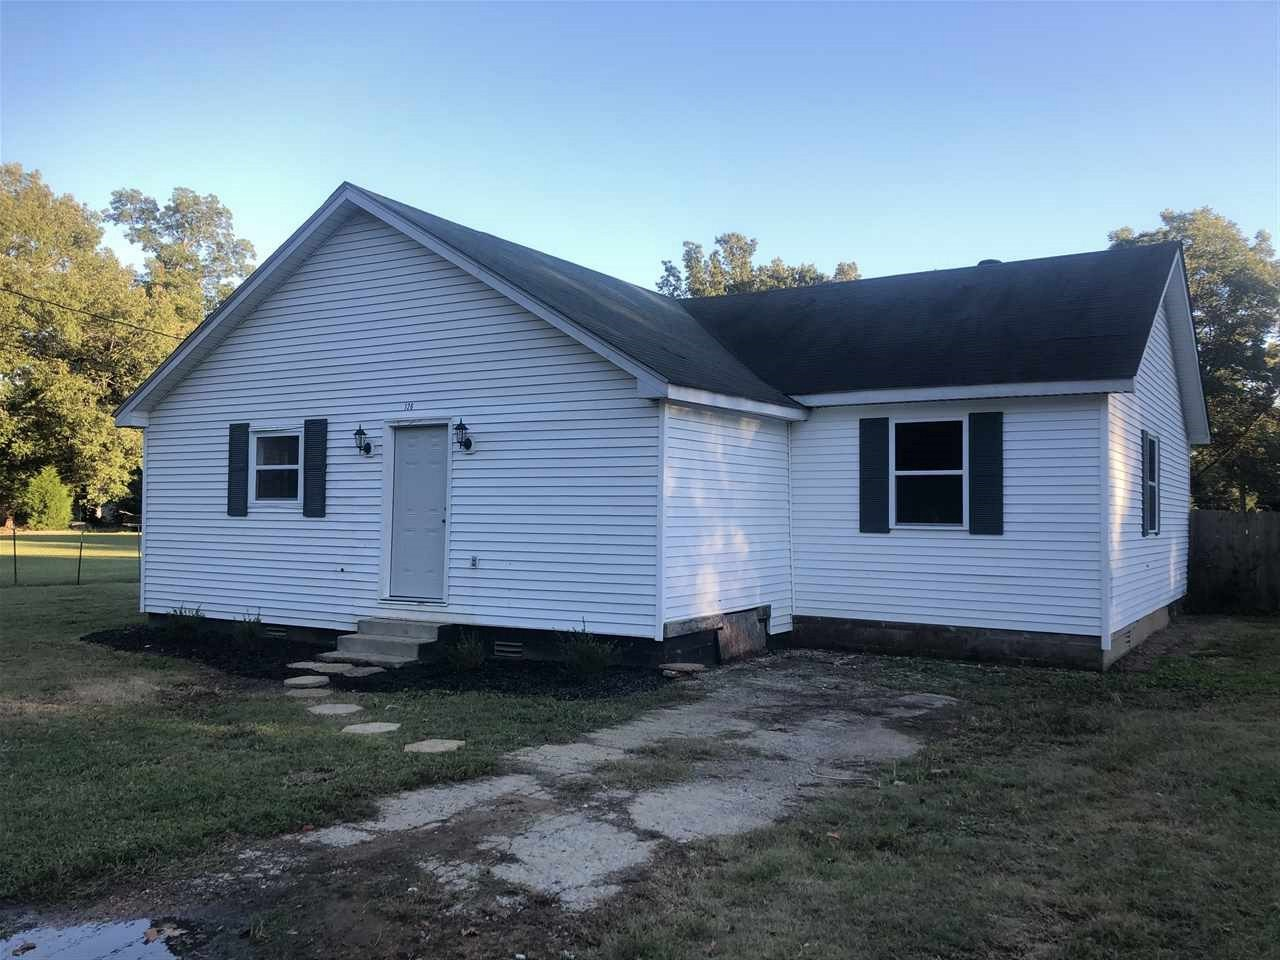 126 Shannon St, Dyersburg, Tennessee 38024, 3 Bedrooms Bedrooms, ,2 BathroomsBathrooms,Residential,For Sale,126 Shannon St,204001